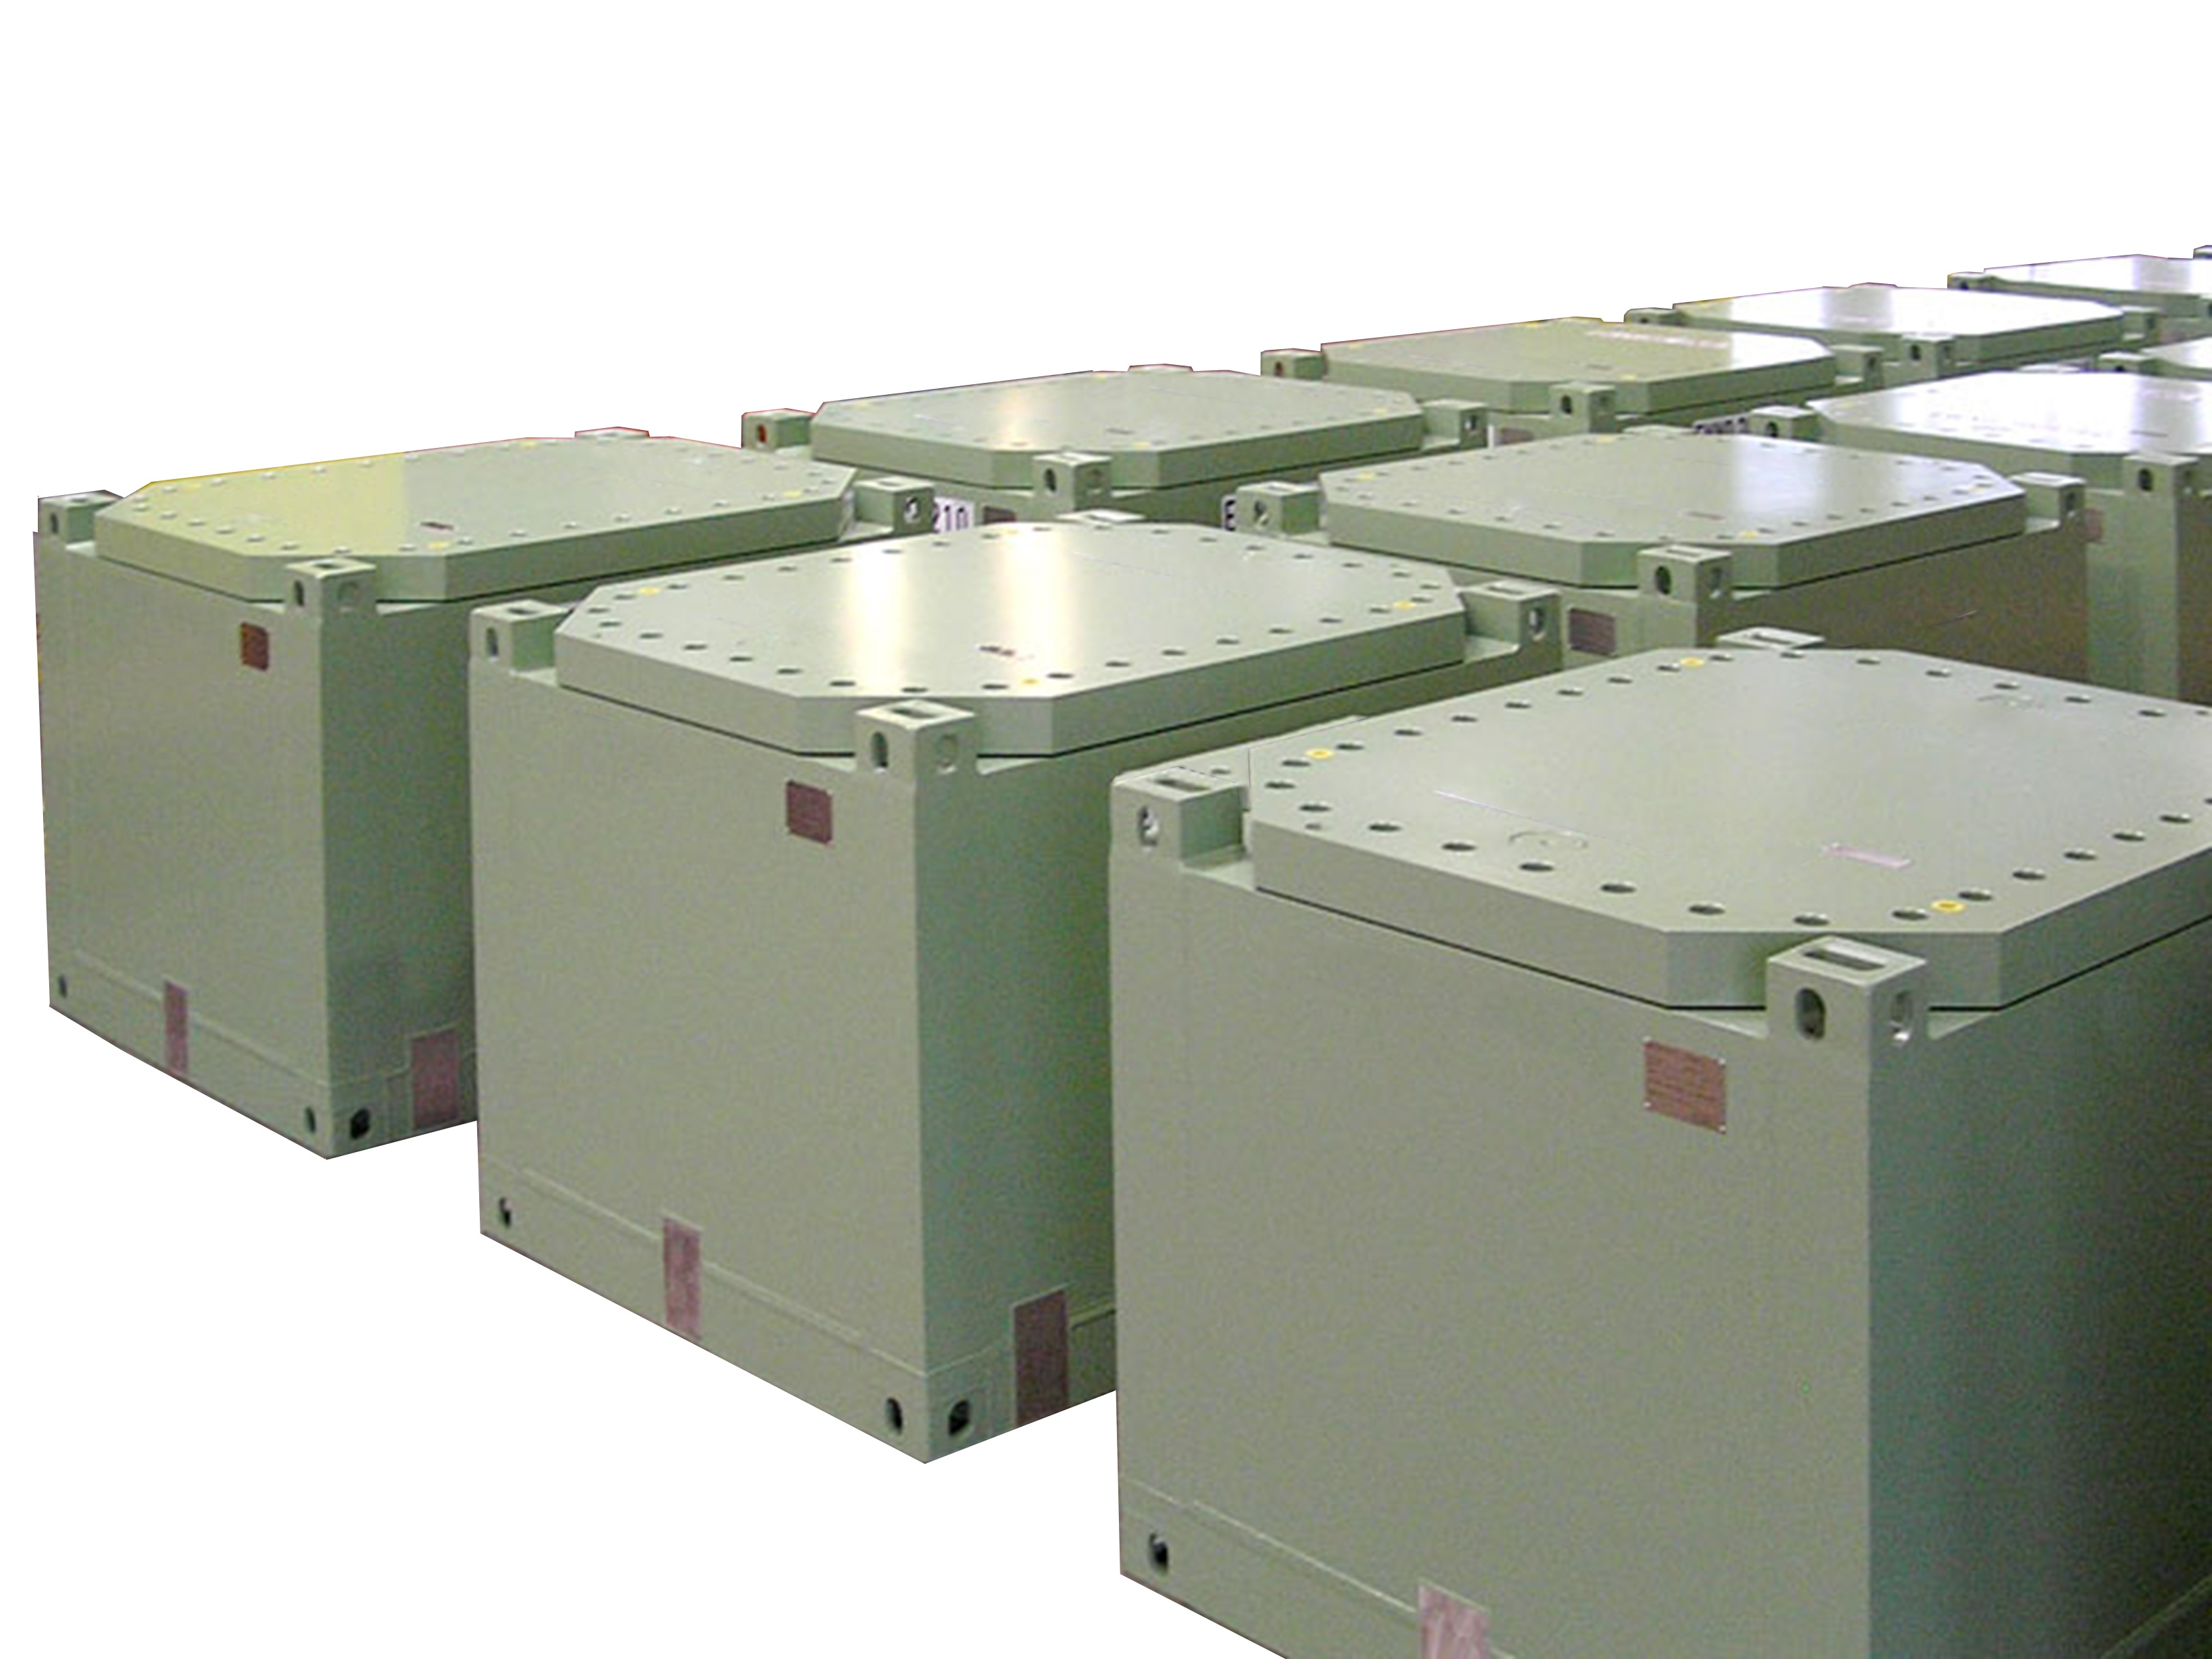 Shielded Containers and Nuclear Waste Processing